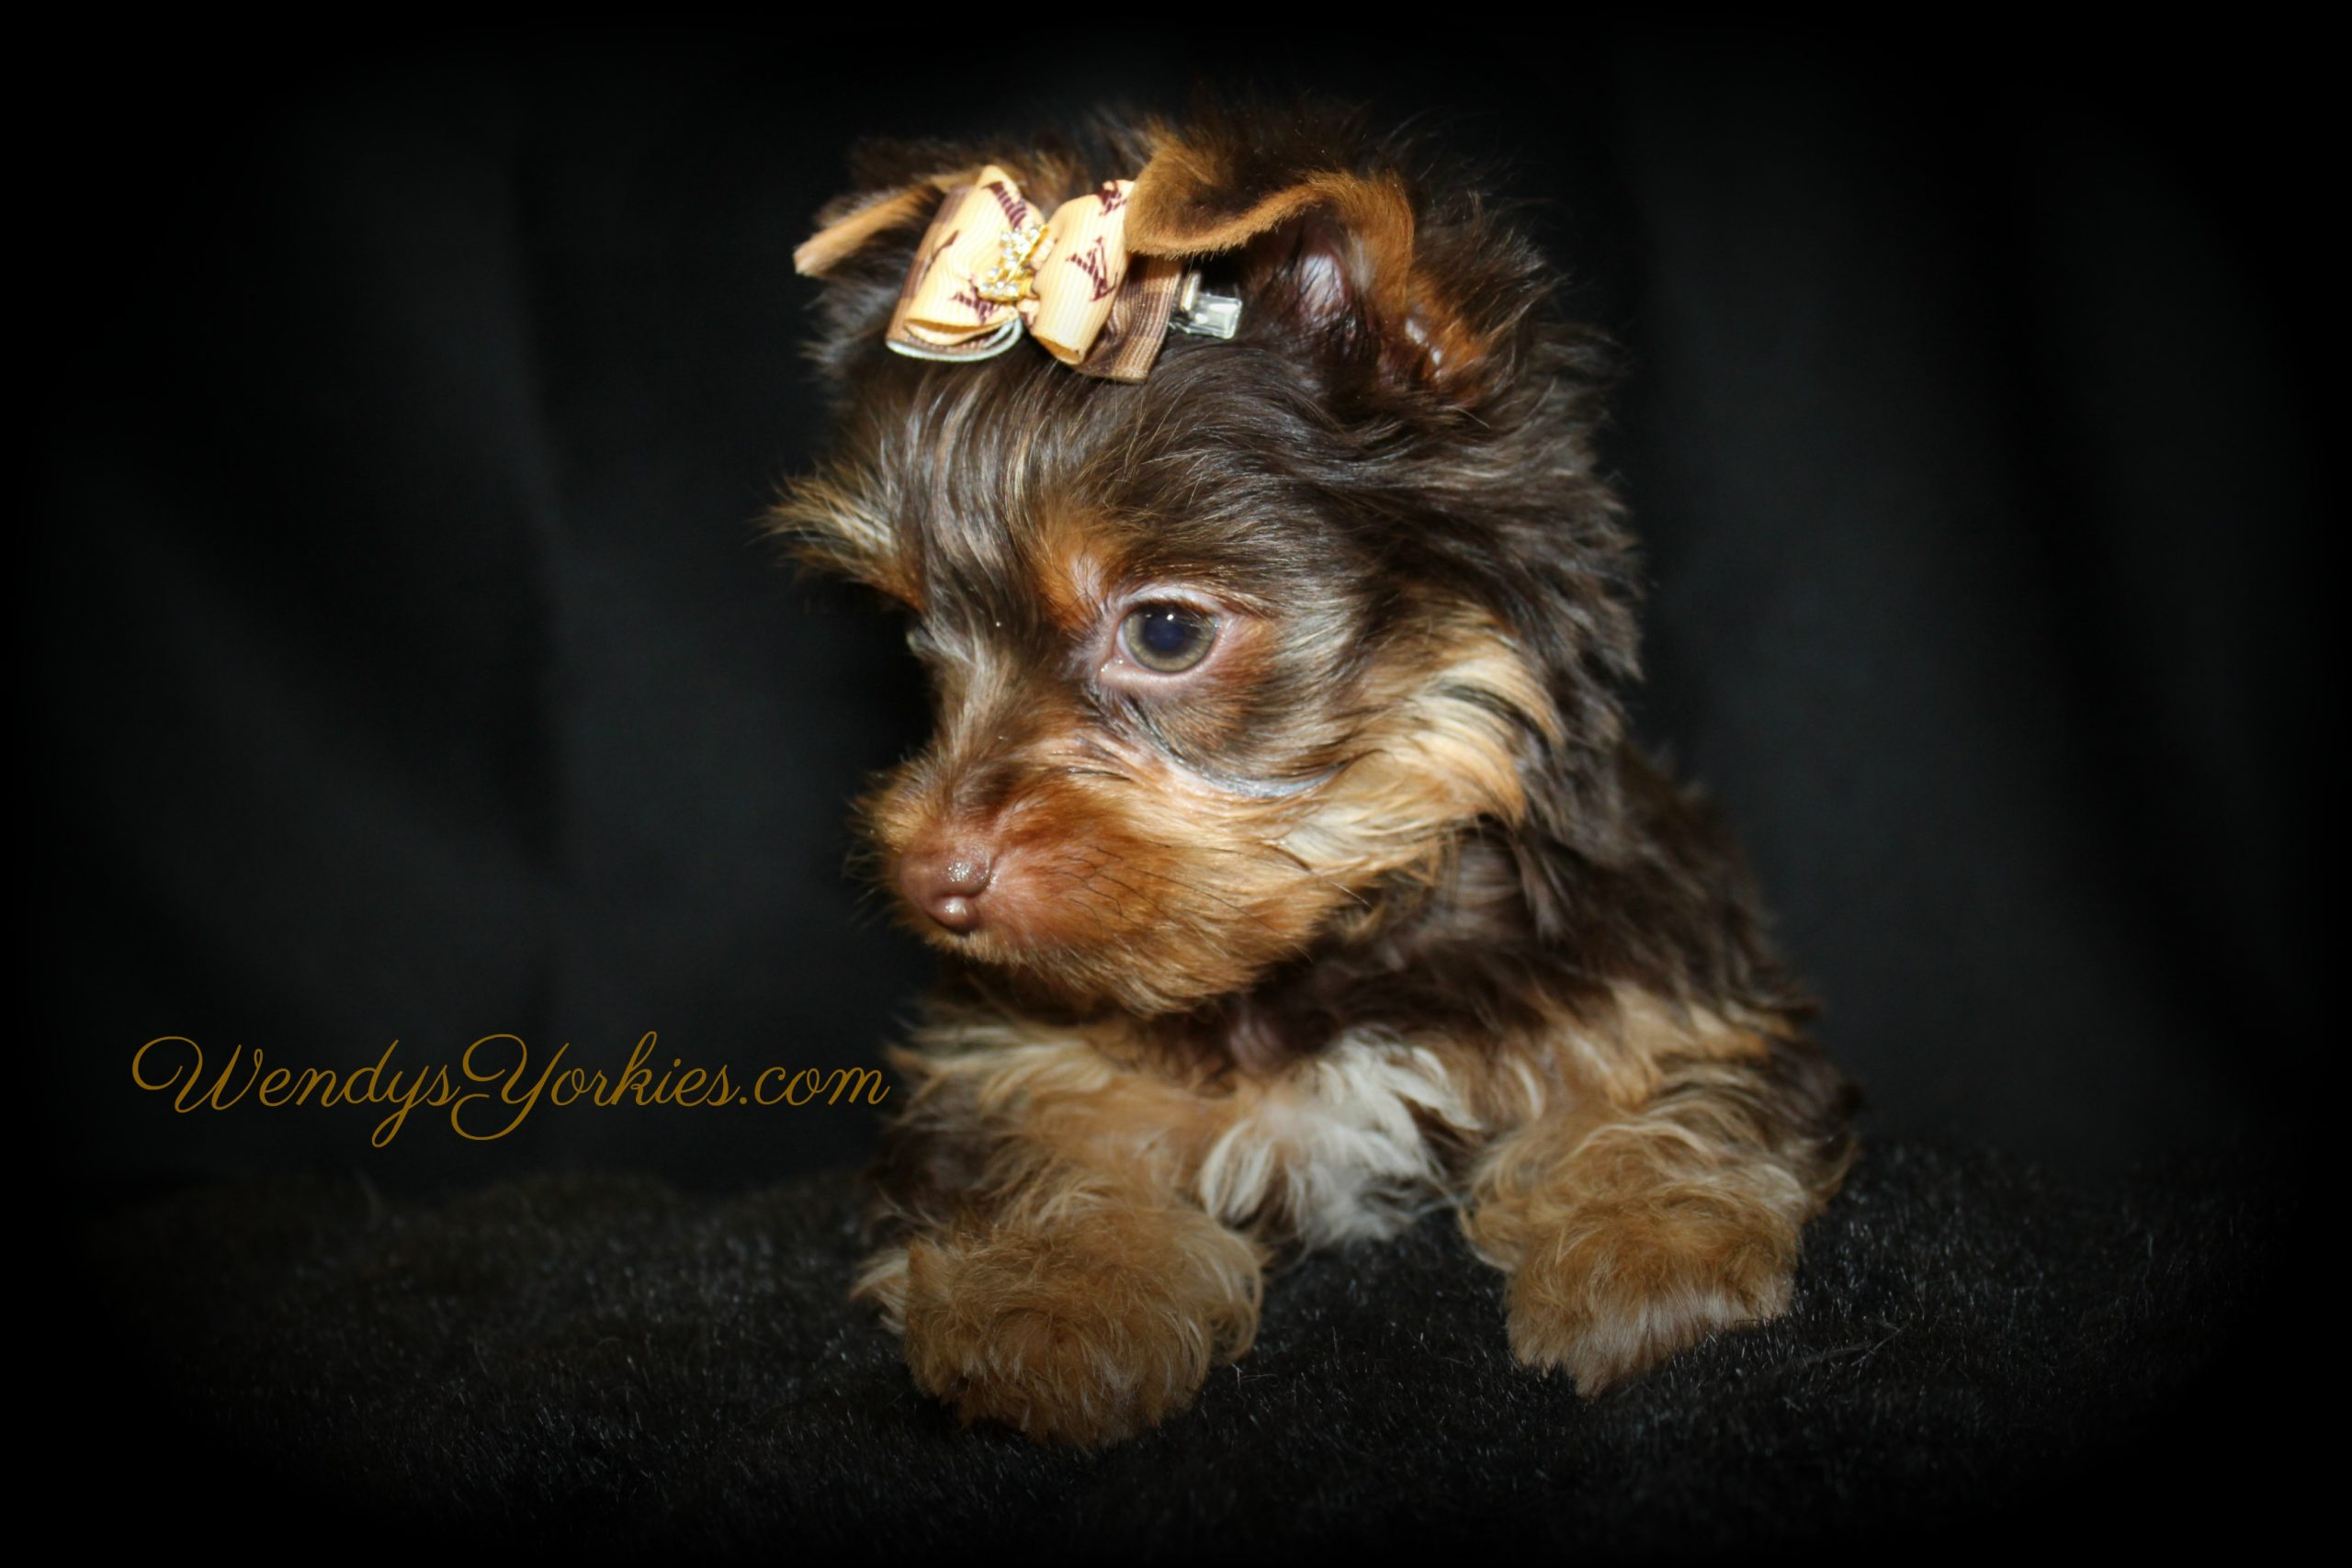 Chocolate YOrkie puppy for sale, Harley cm1,WendysYorkies.com